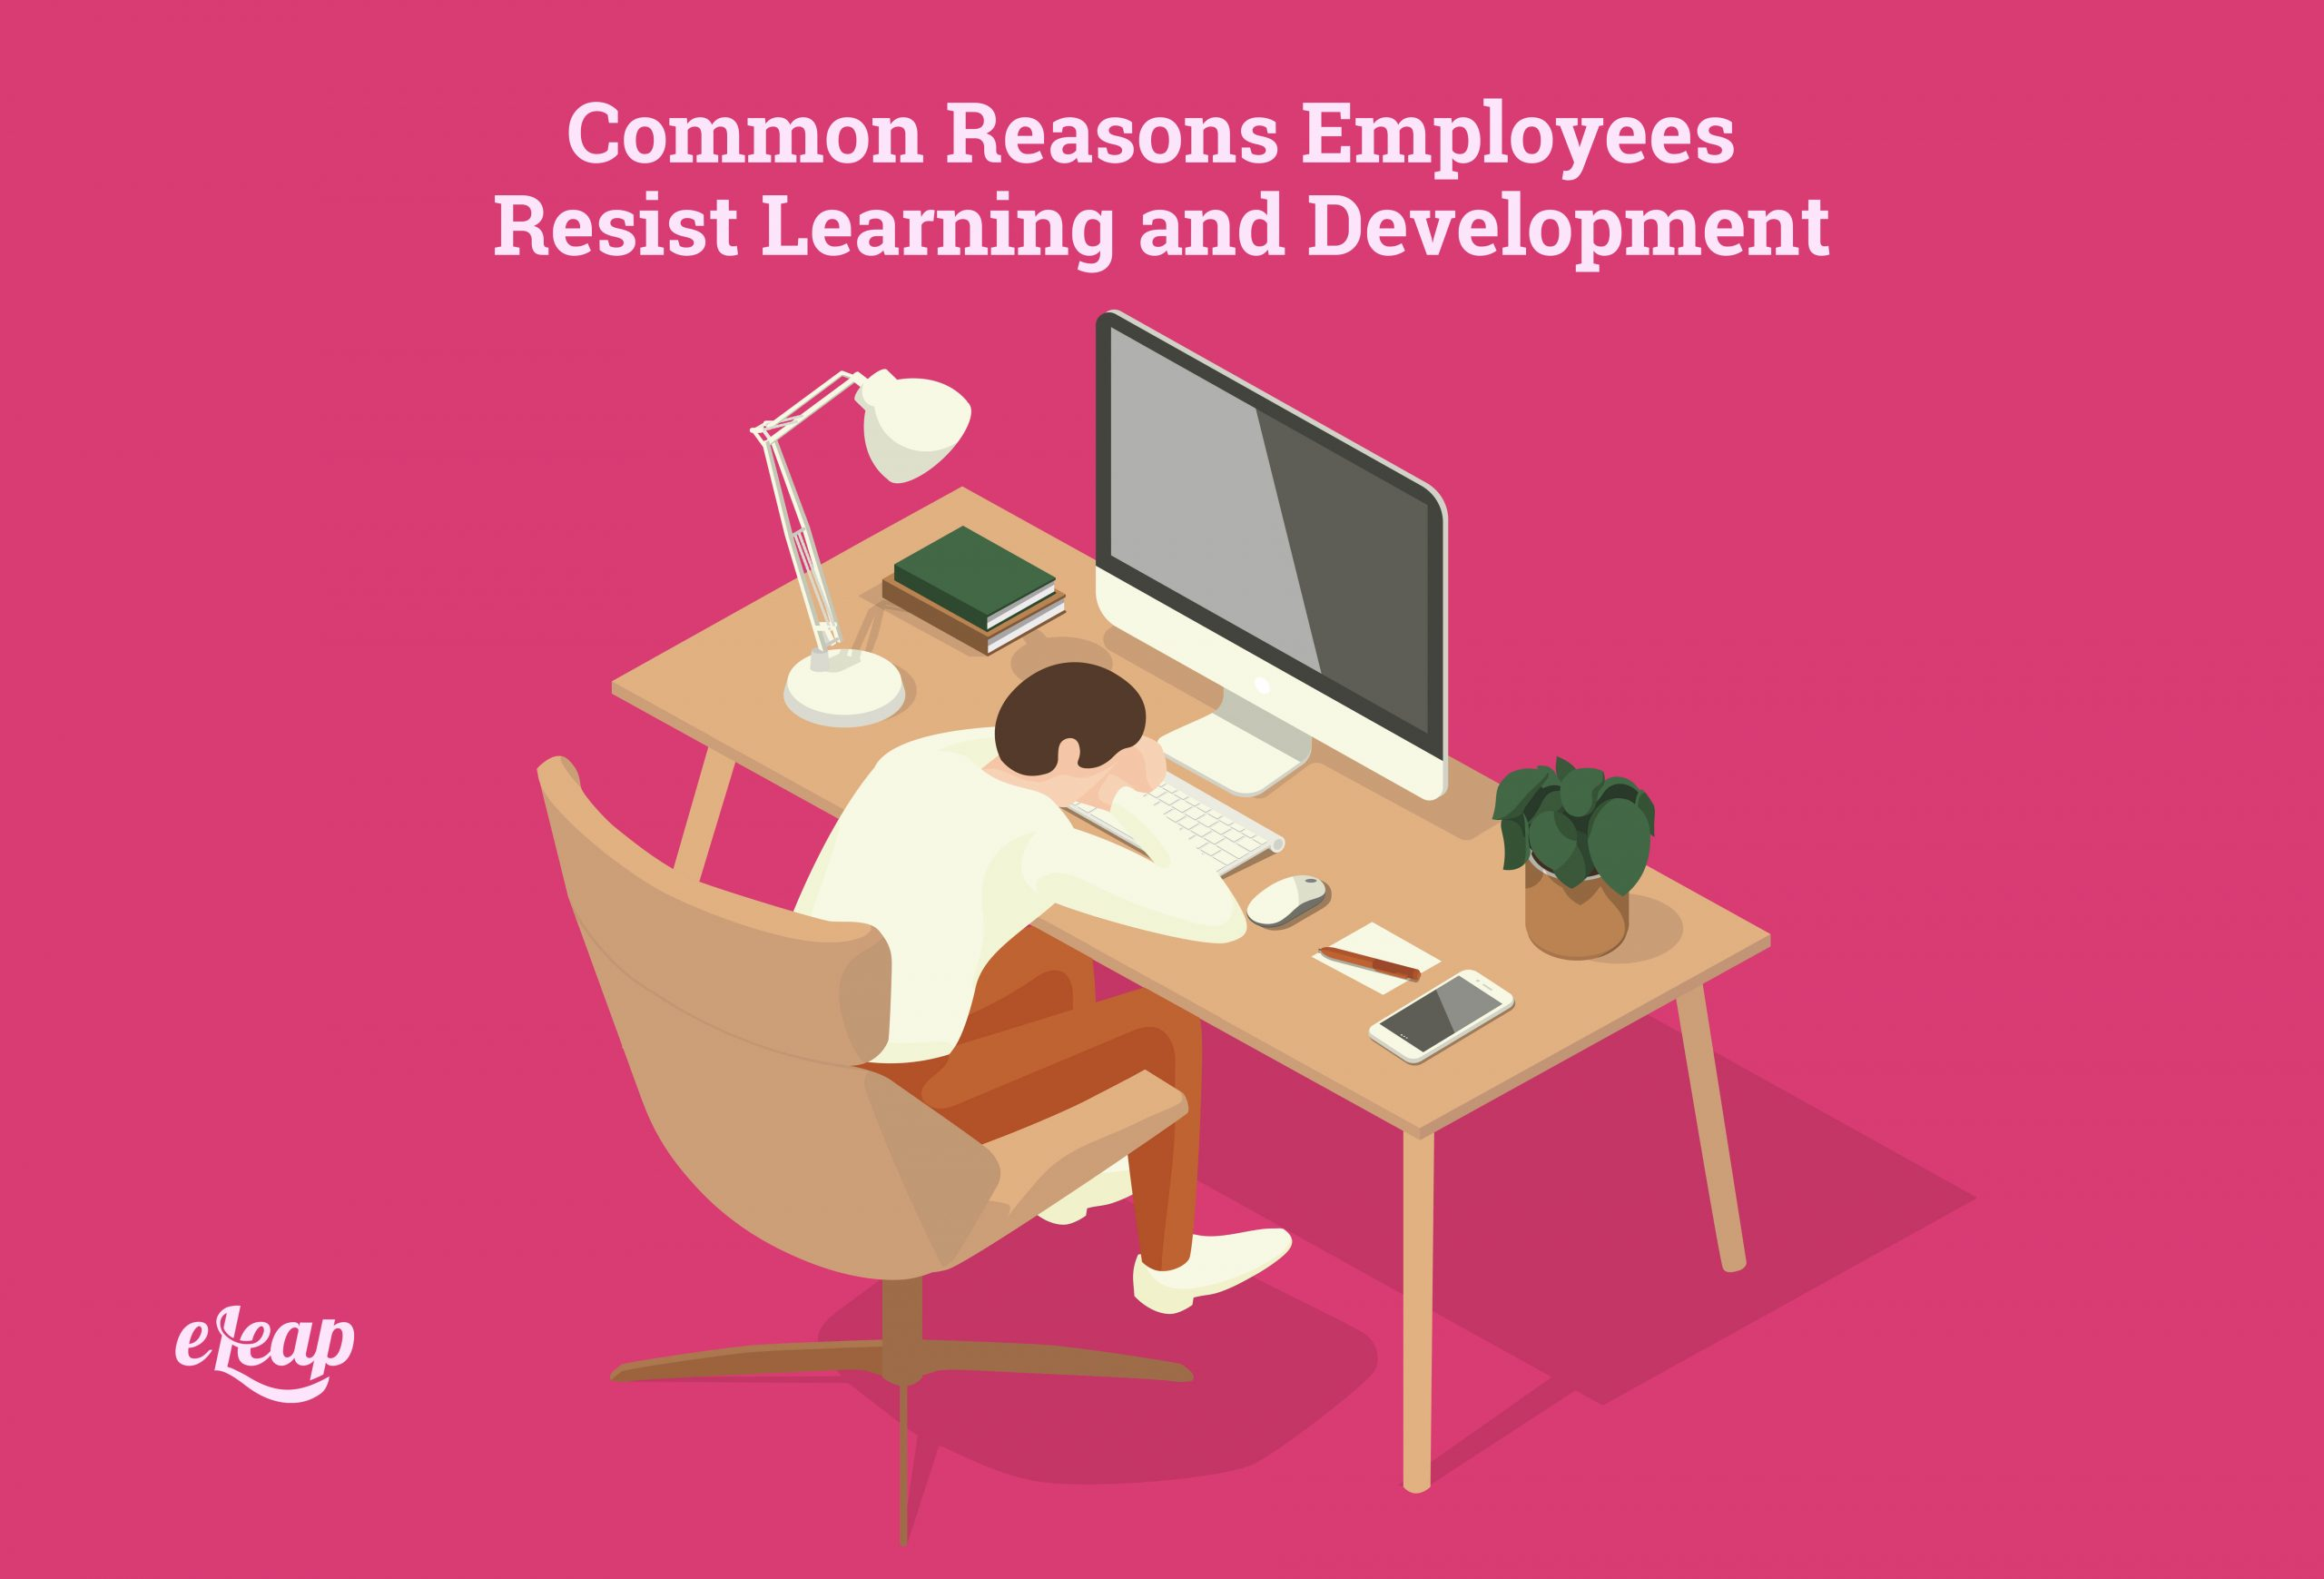 Common Reasons Employees Resist Learning and Development